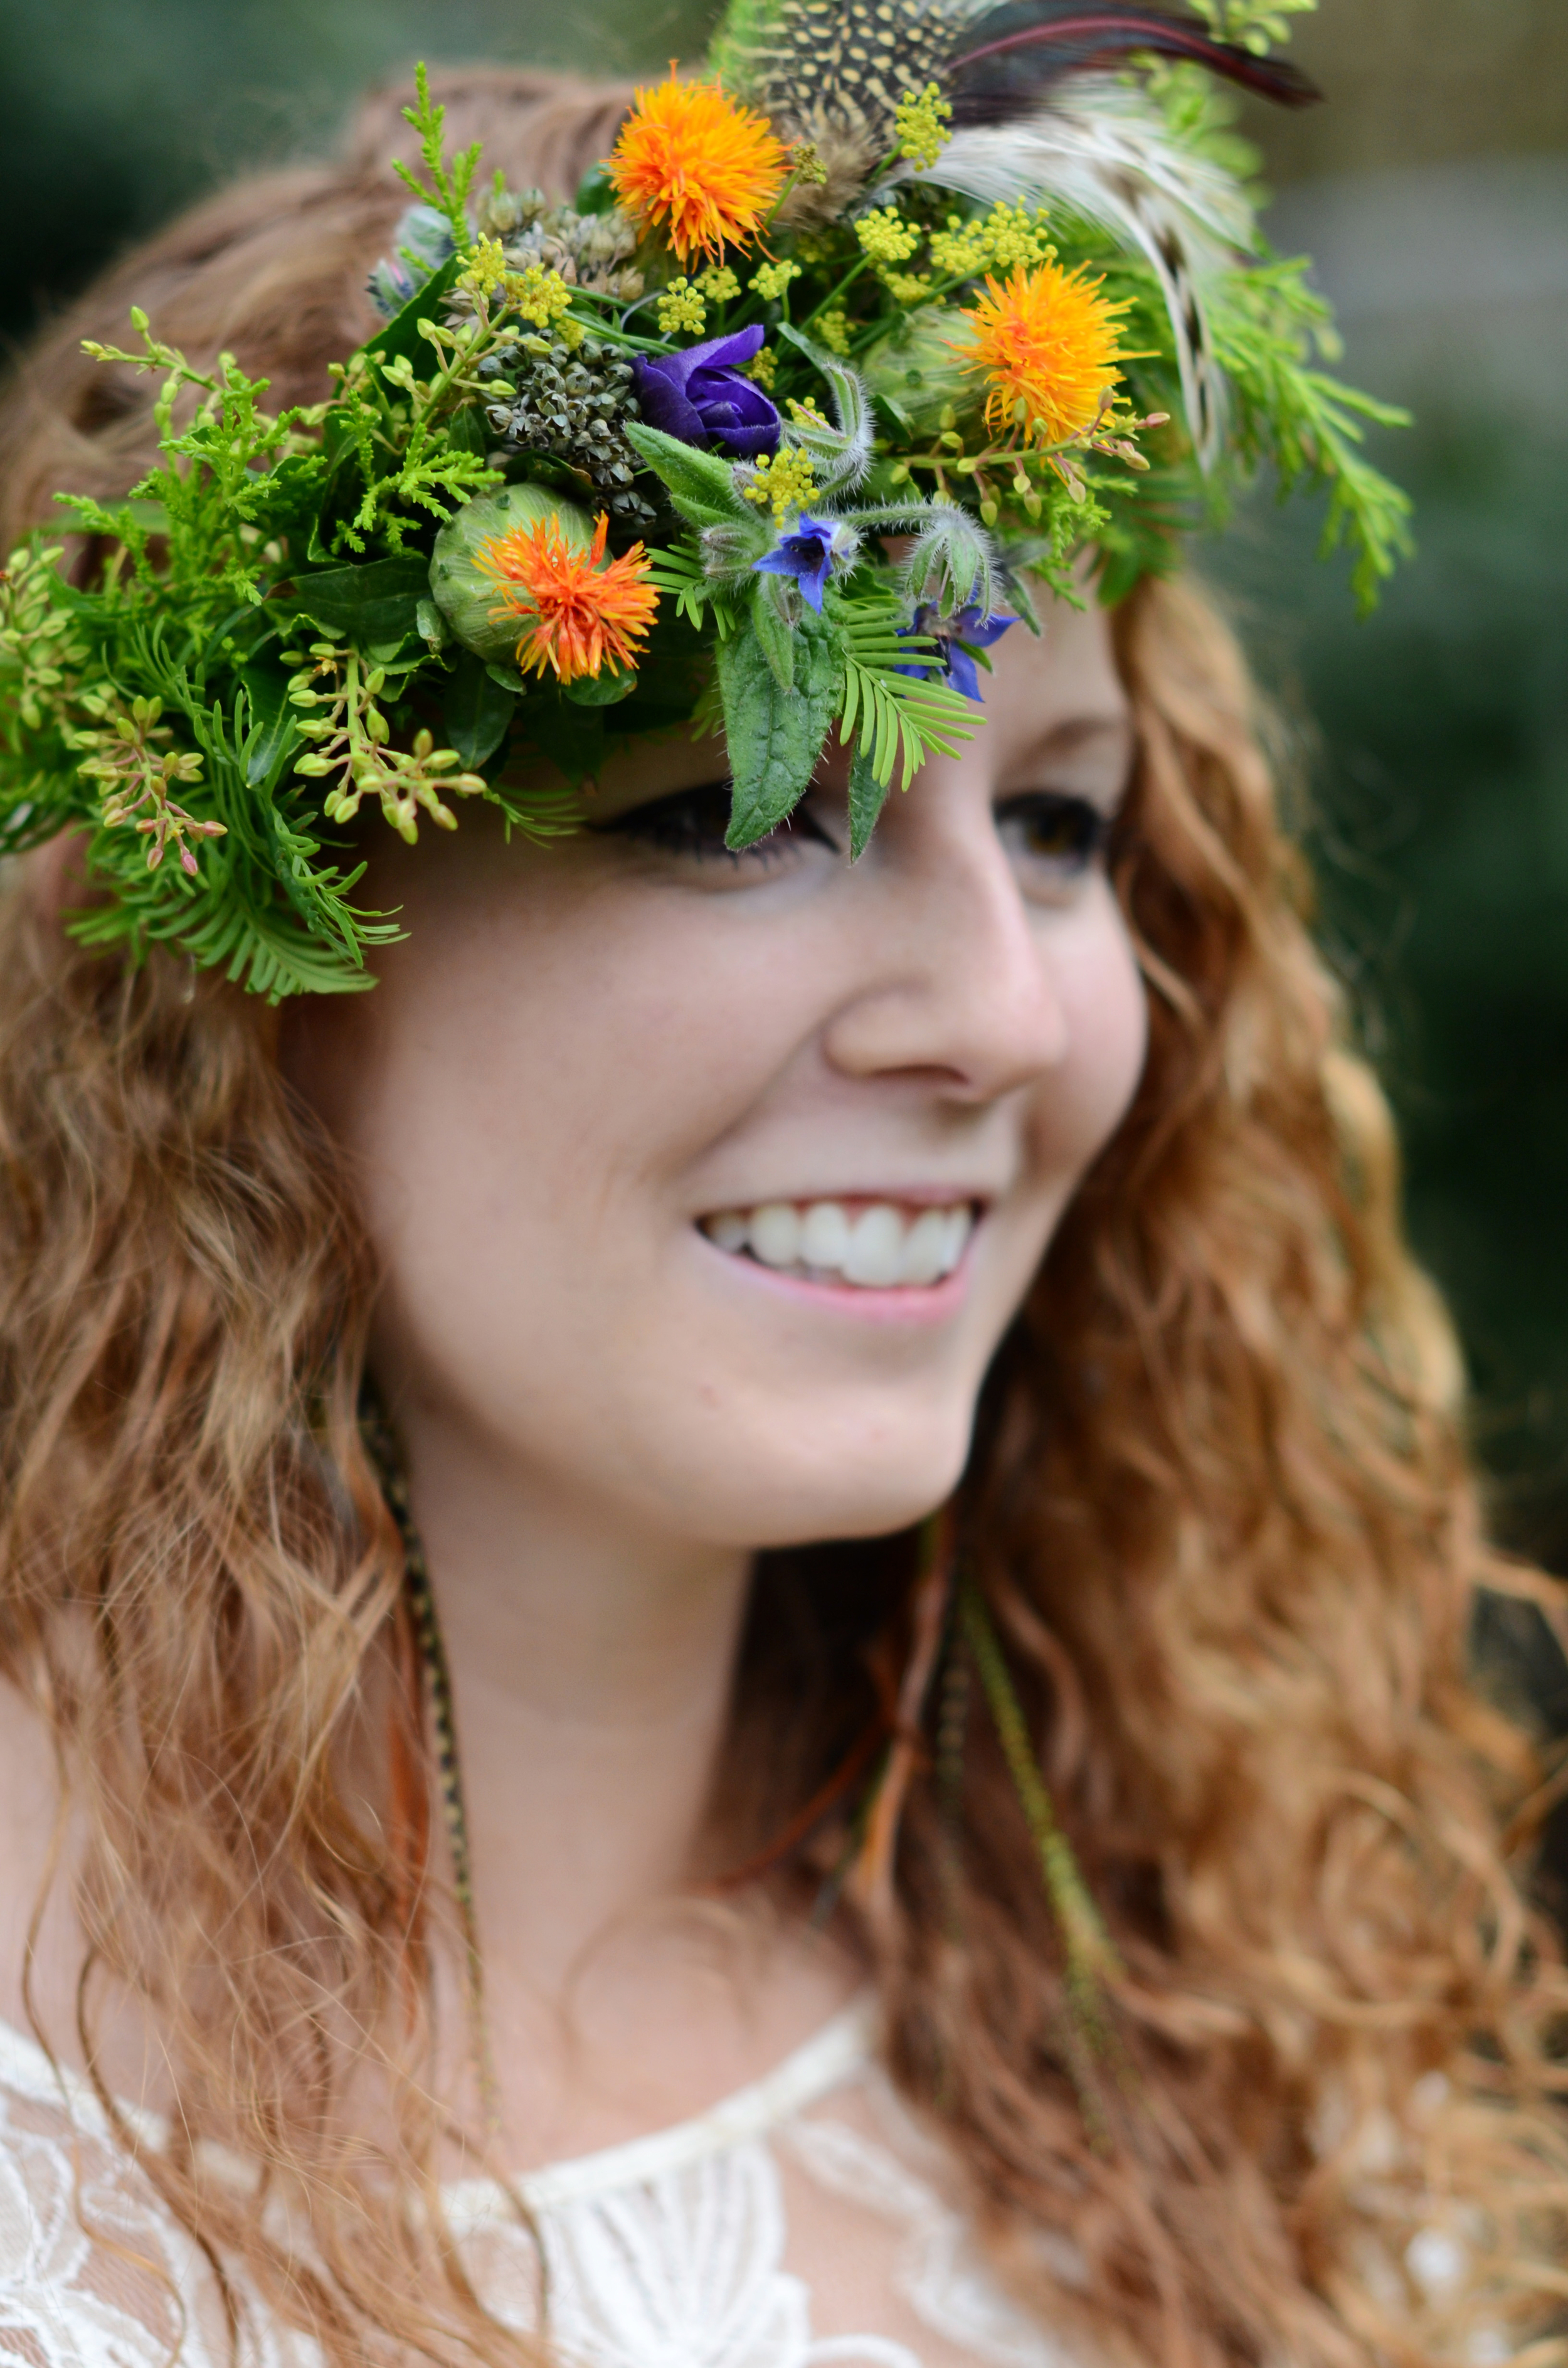 Flower crown by Fraser Valley wedding florist, Floral Design by Lili in  Abbotsford, B.C. Image by Acacia Ann Photography